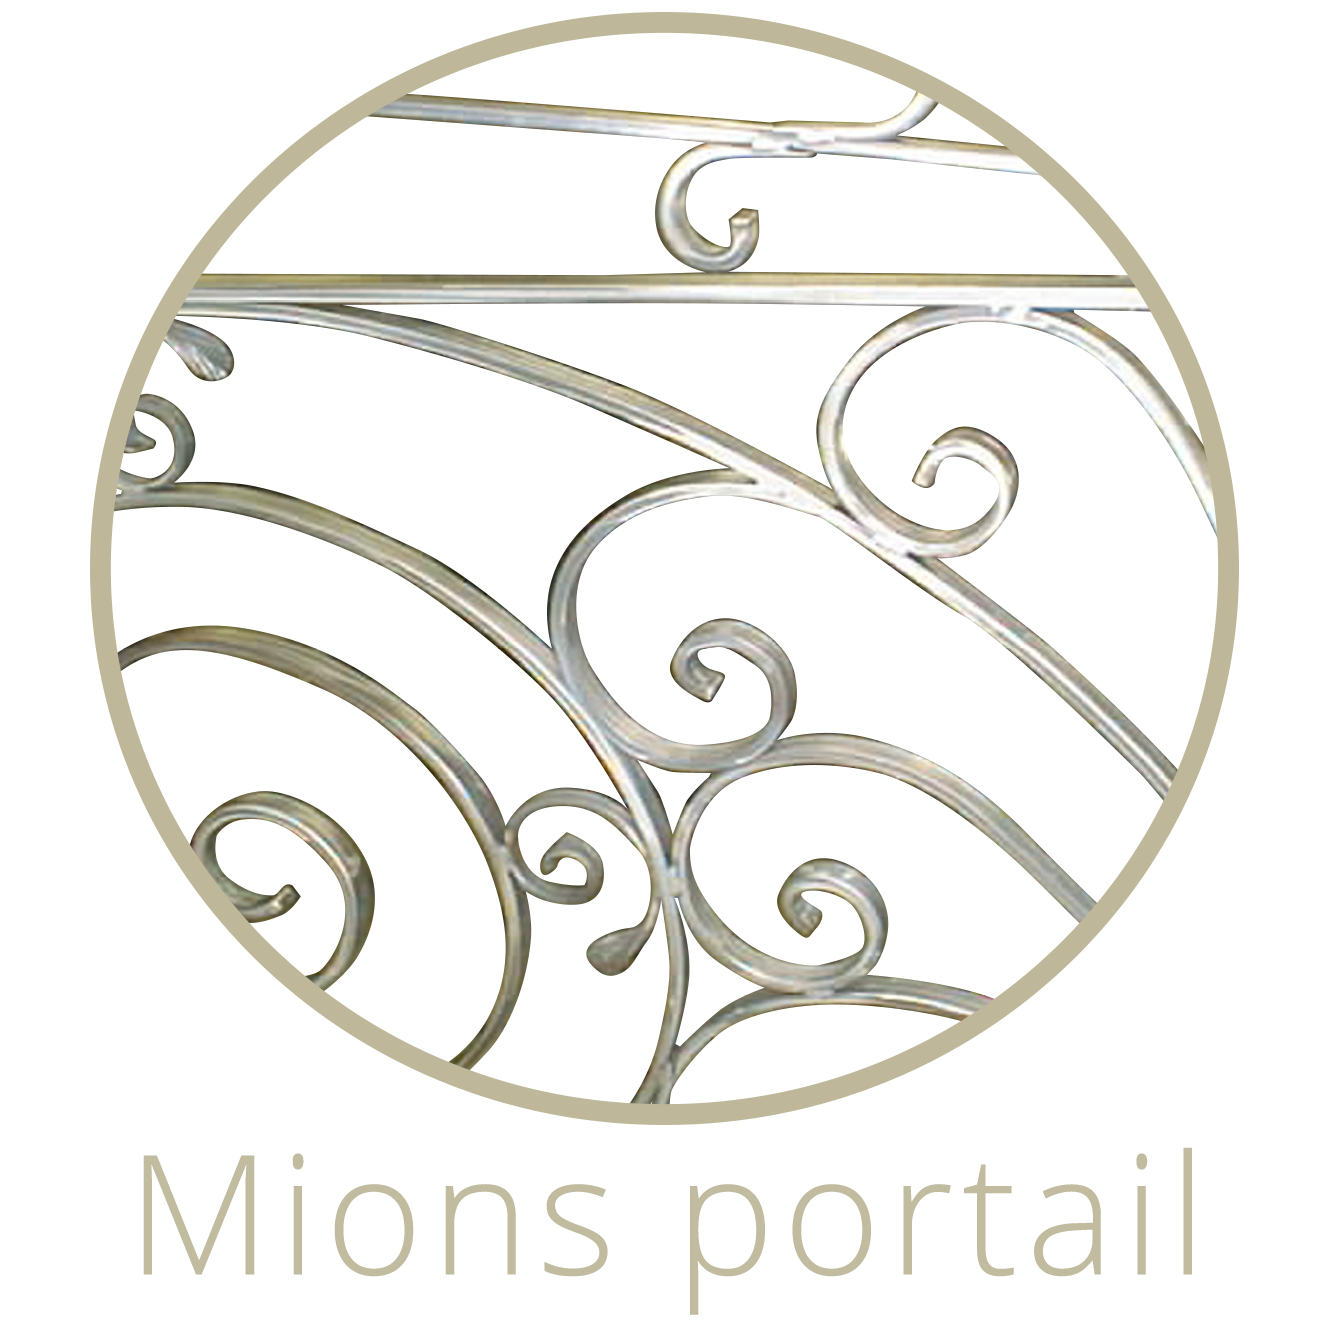 Mions portail